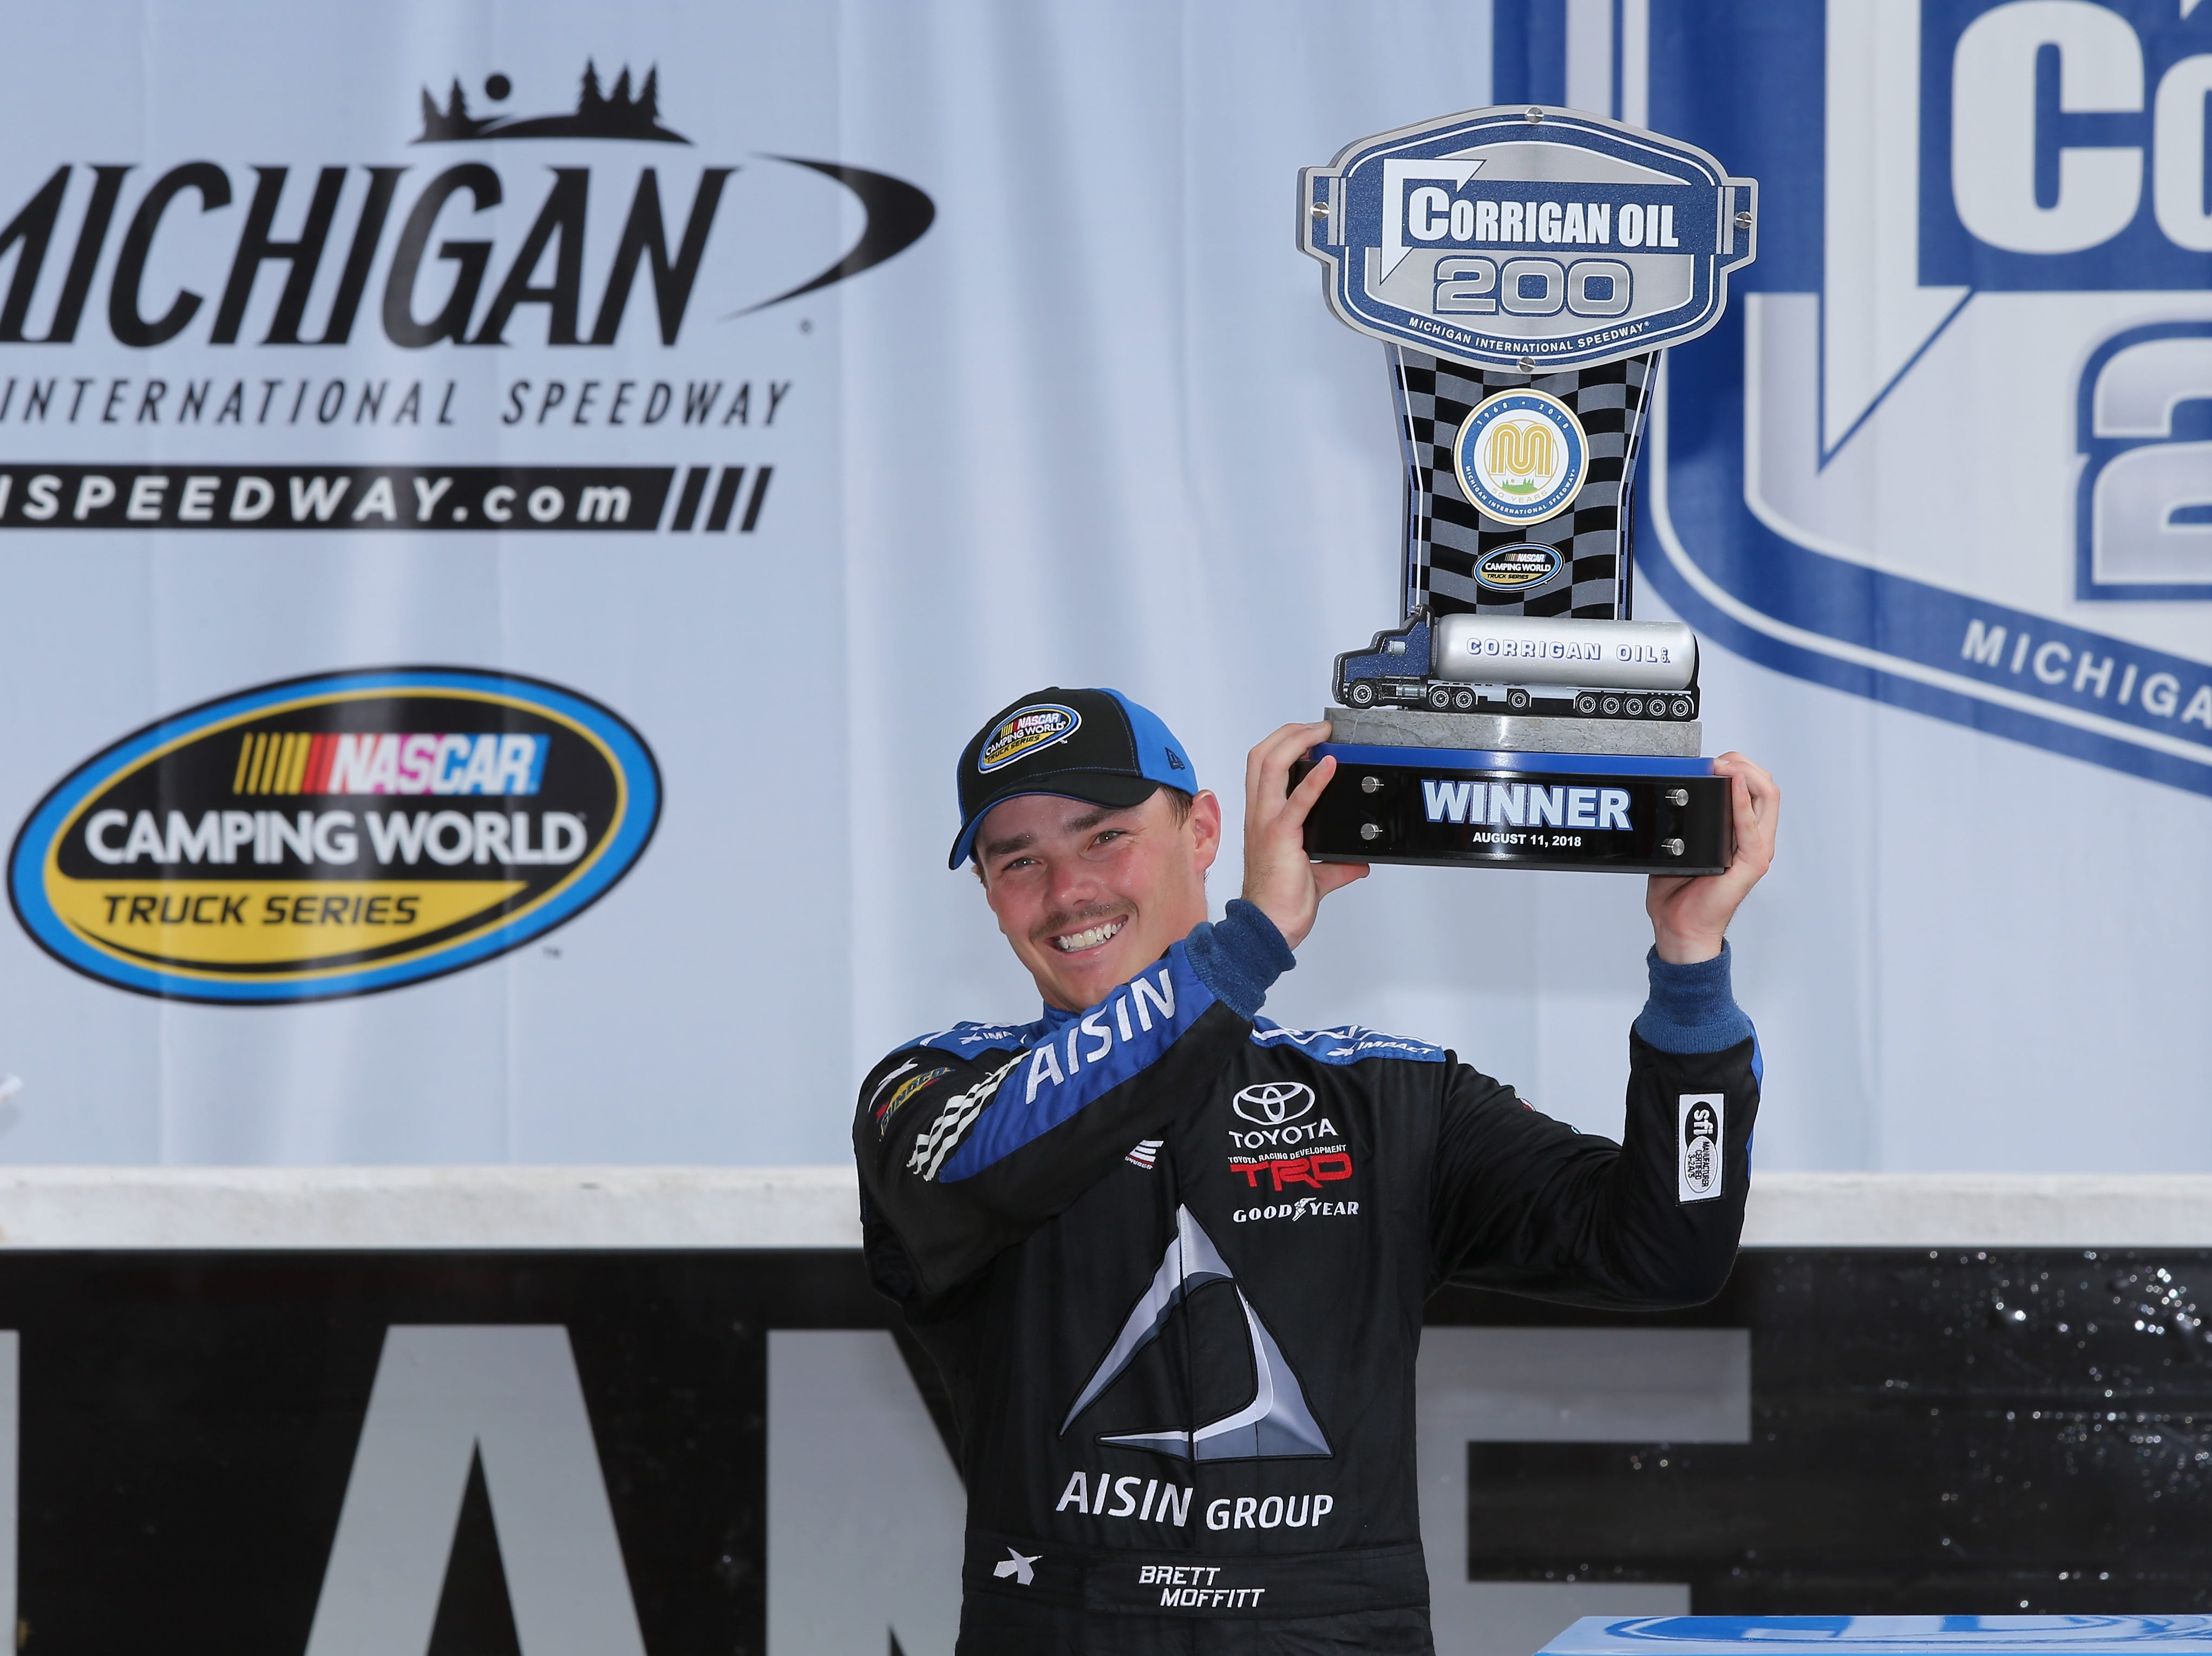 Brett Moffitt, driver of the No. 16 Hino Toyota, poses with the trophy in Victory Lane after winning the NASCAR Camping World Truck Series Corrigan Oil 200 at Michigan International Speedway on August 11, 2018 in Brooklyn.